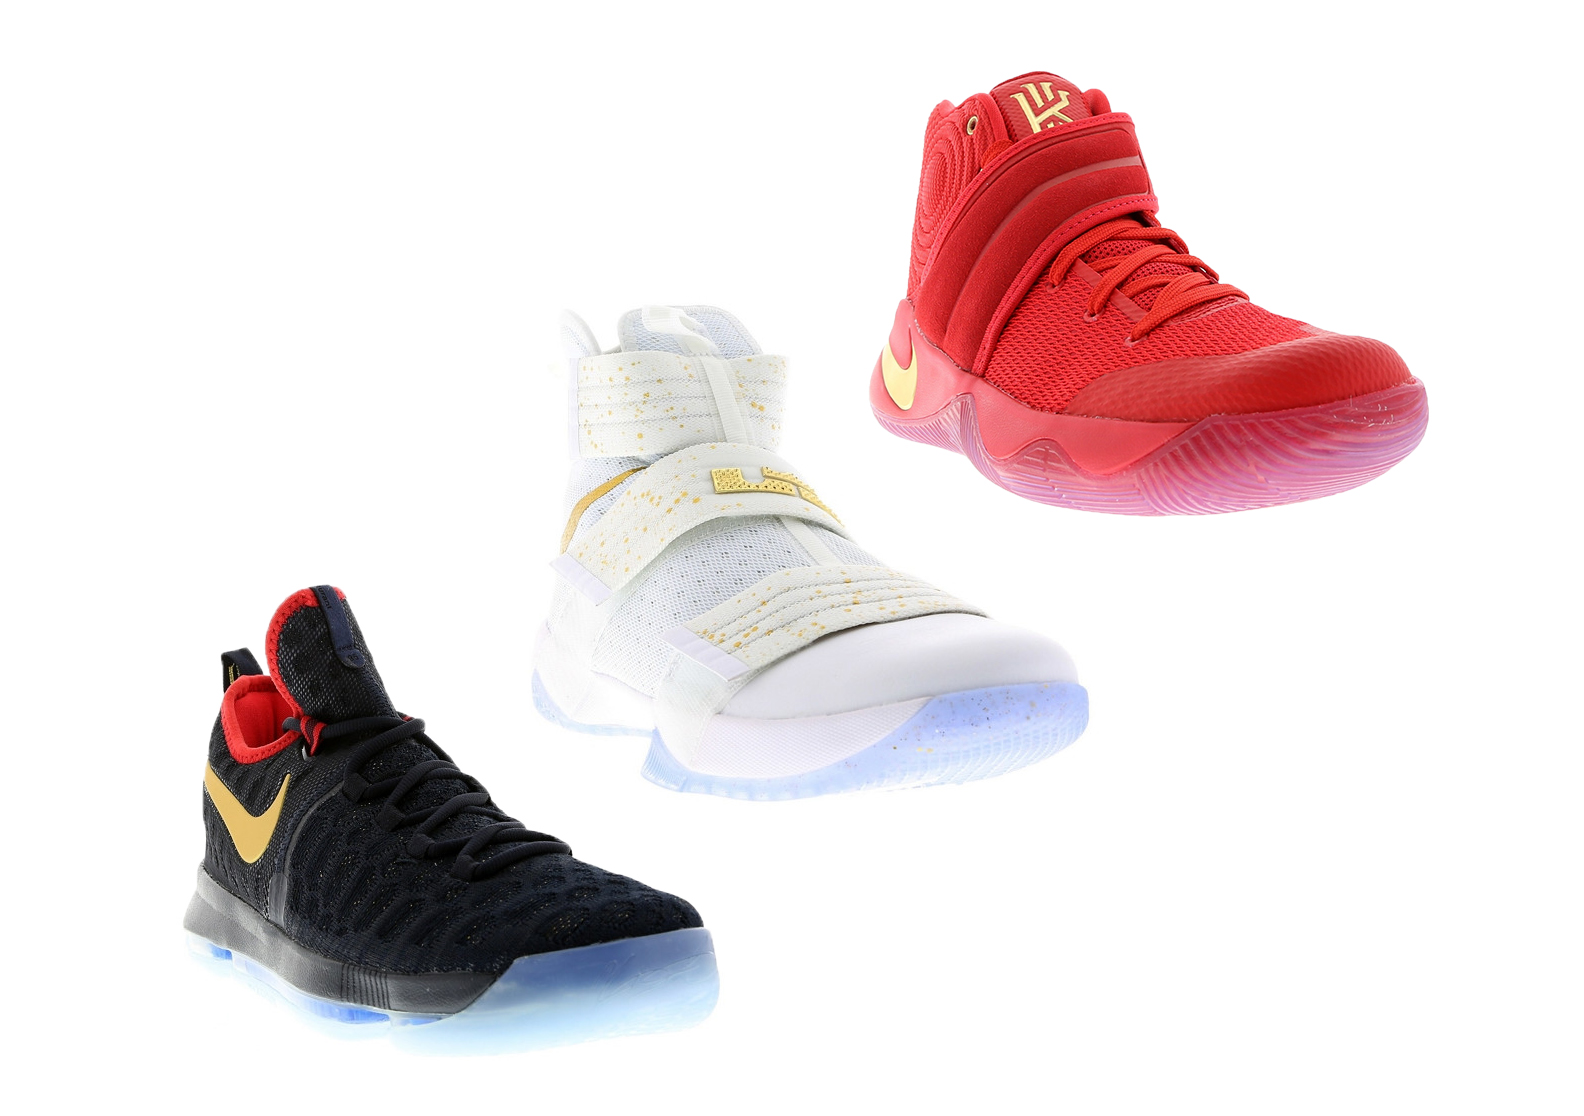 the best attitude 3dd29 902e7 Nike Basketball's Gold Medal Pack (KD 9, Kyrie 2, Soldier 10 ...